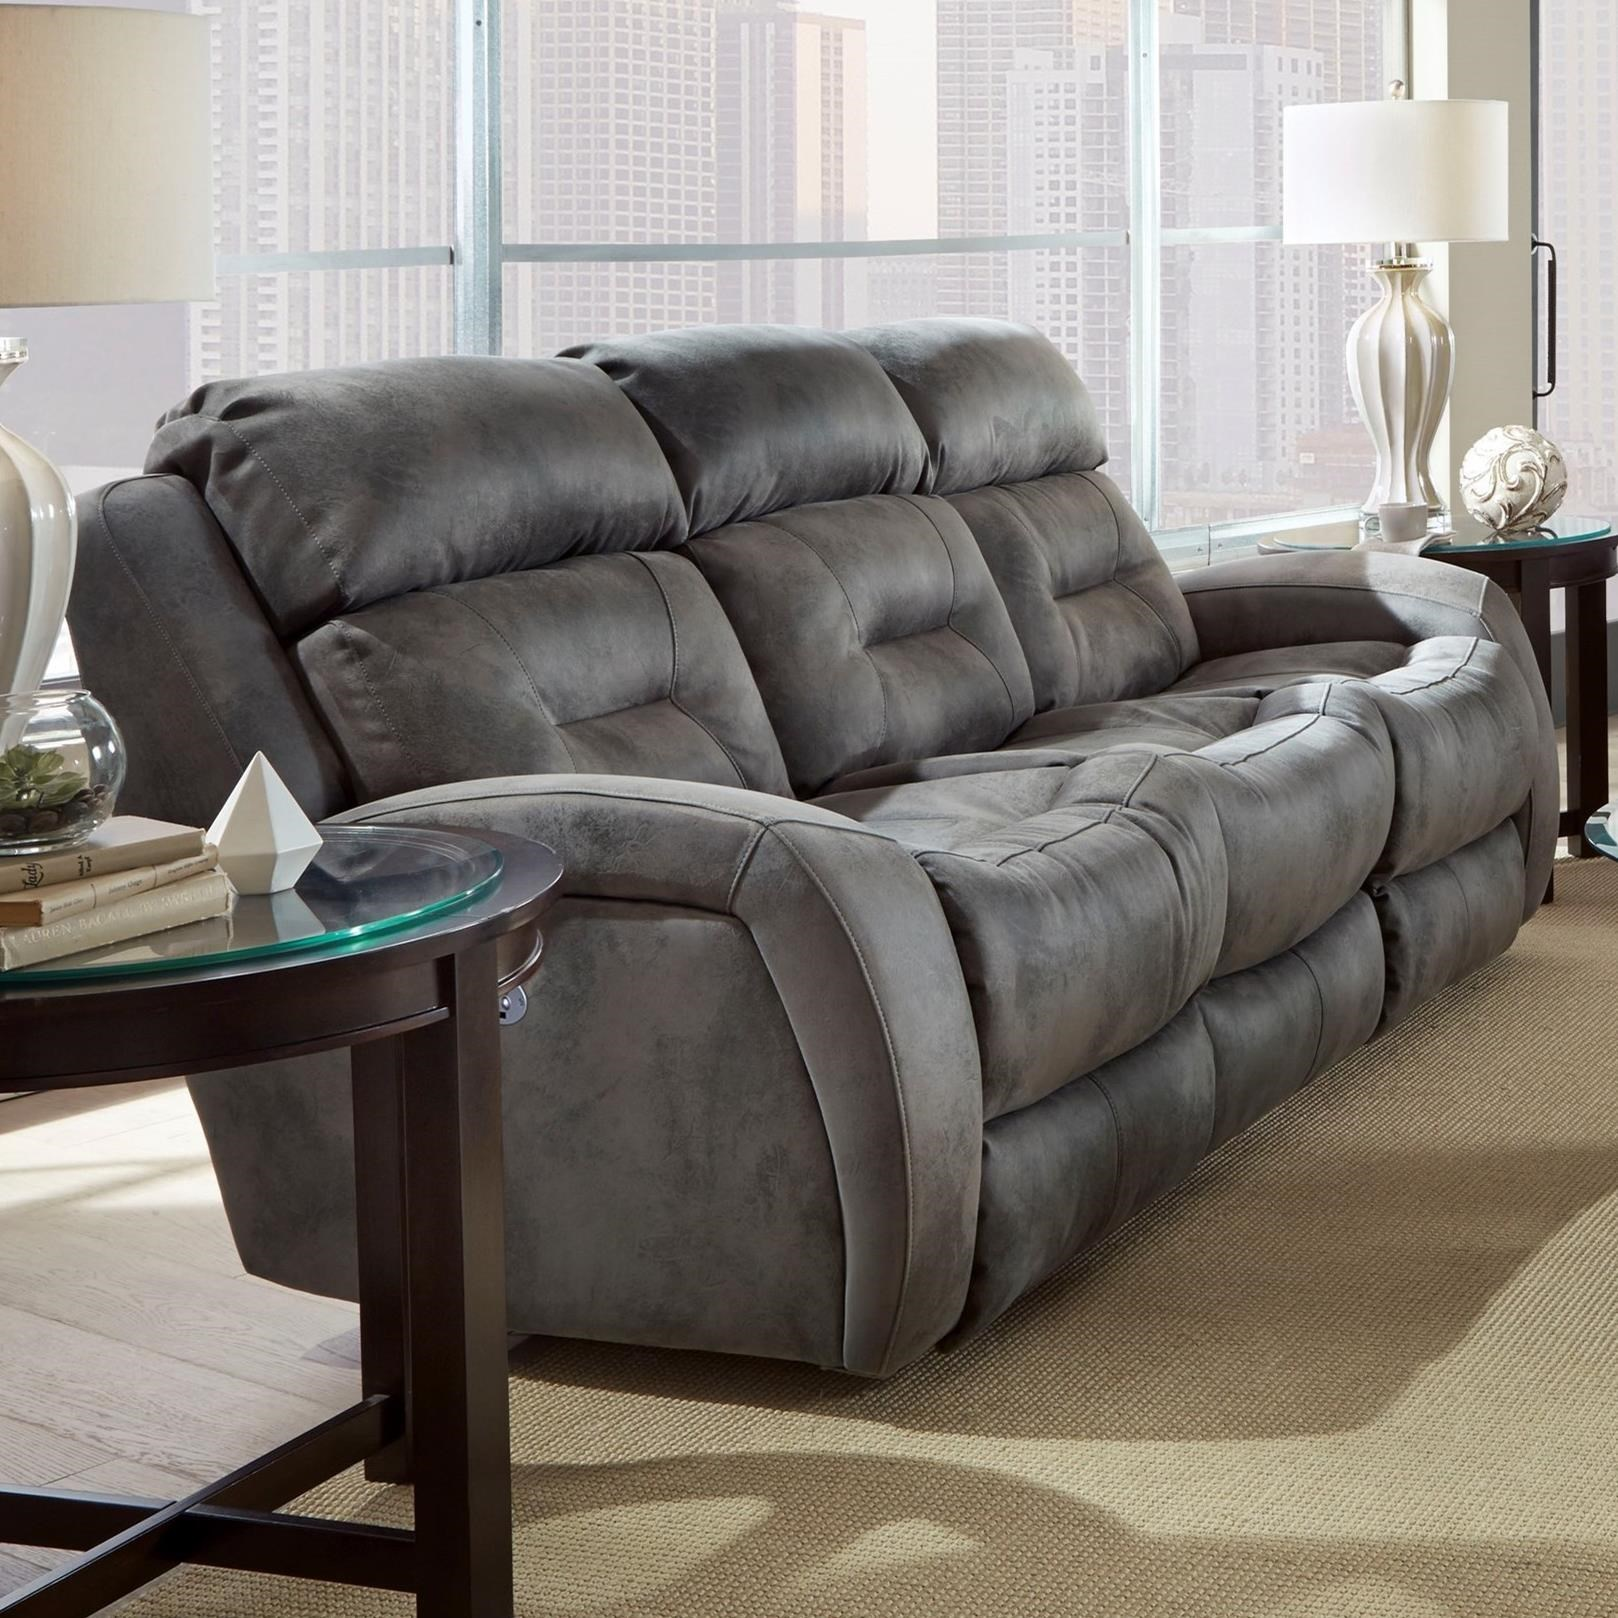 Charmant Southern Motion Showcase Double Reclining Sofa With Power Headrest